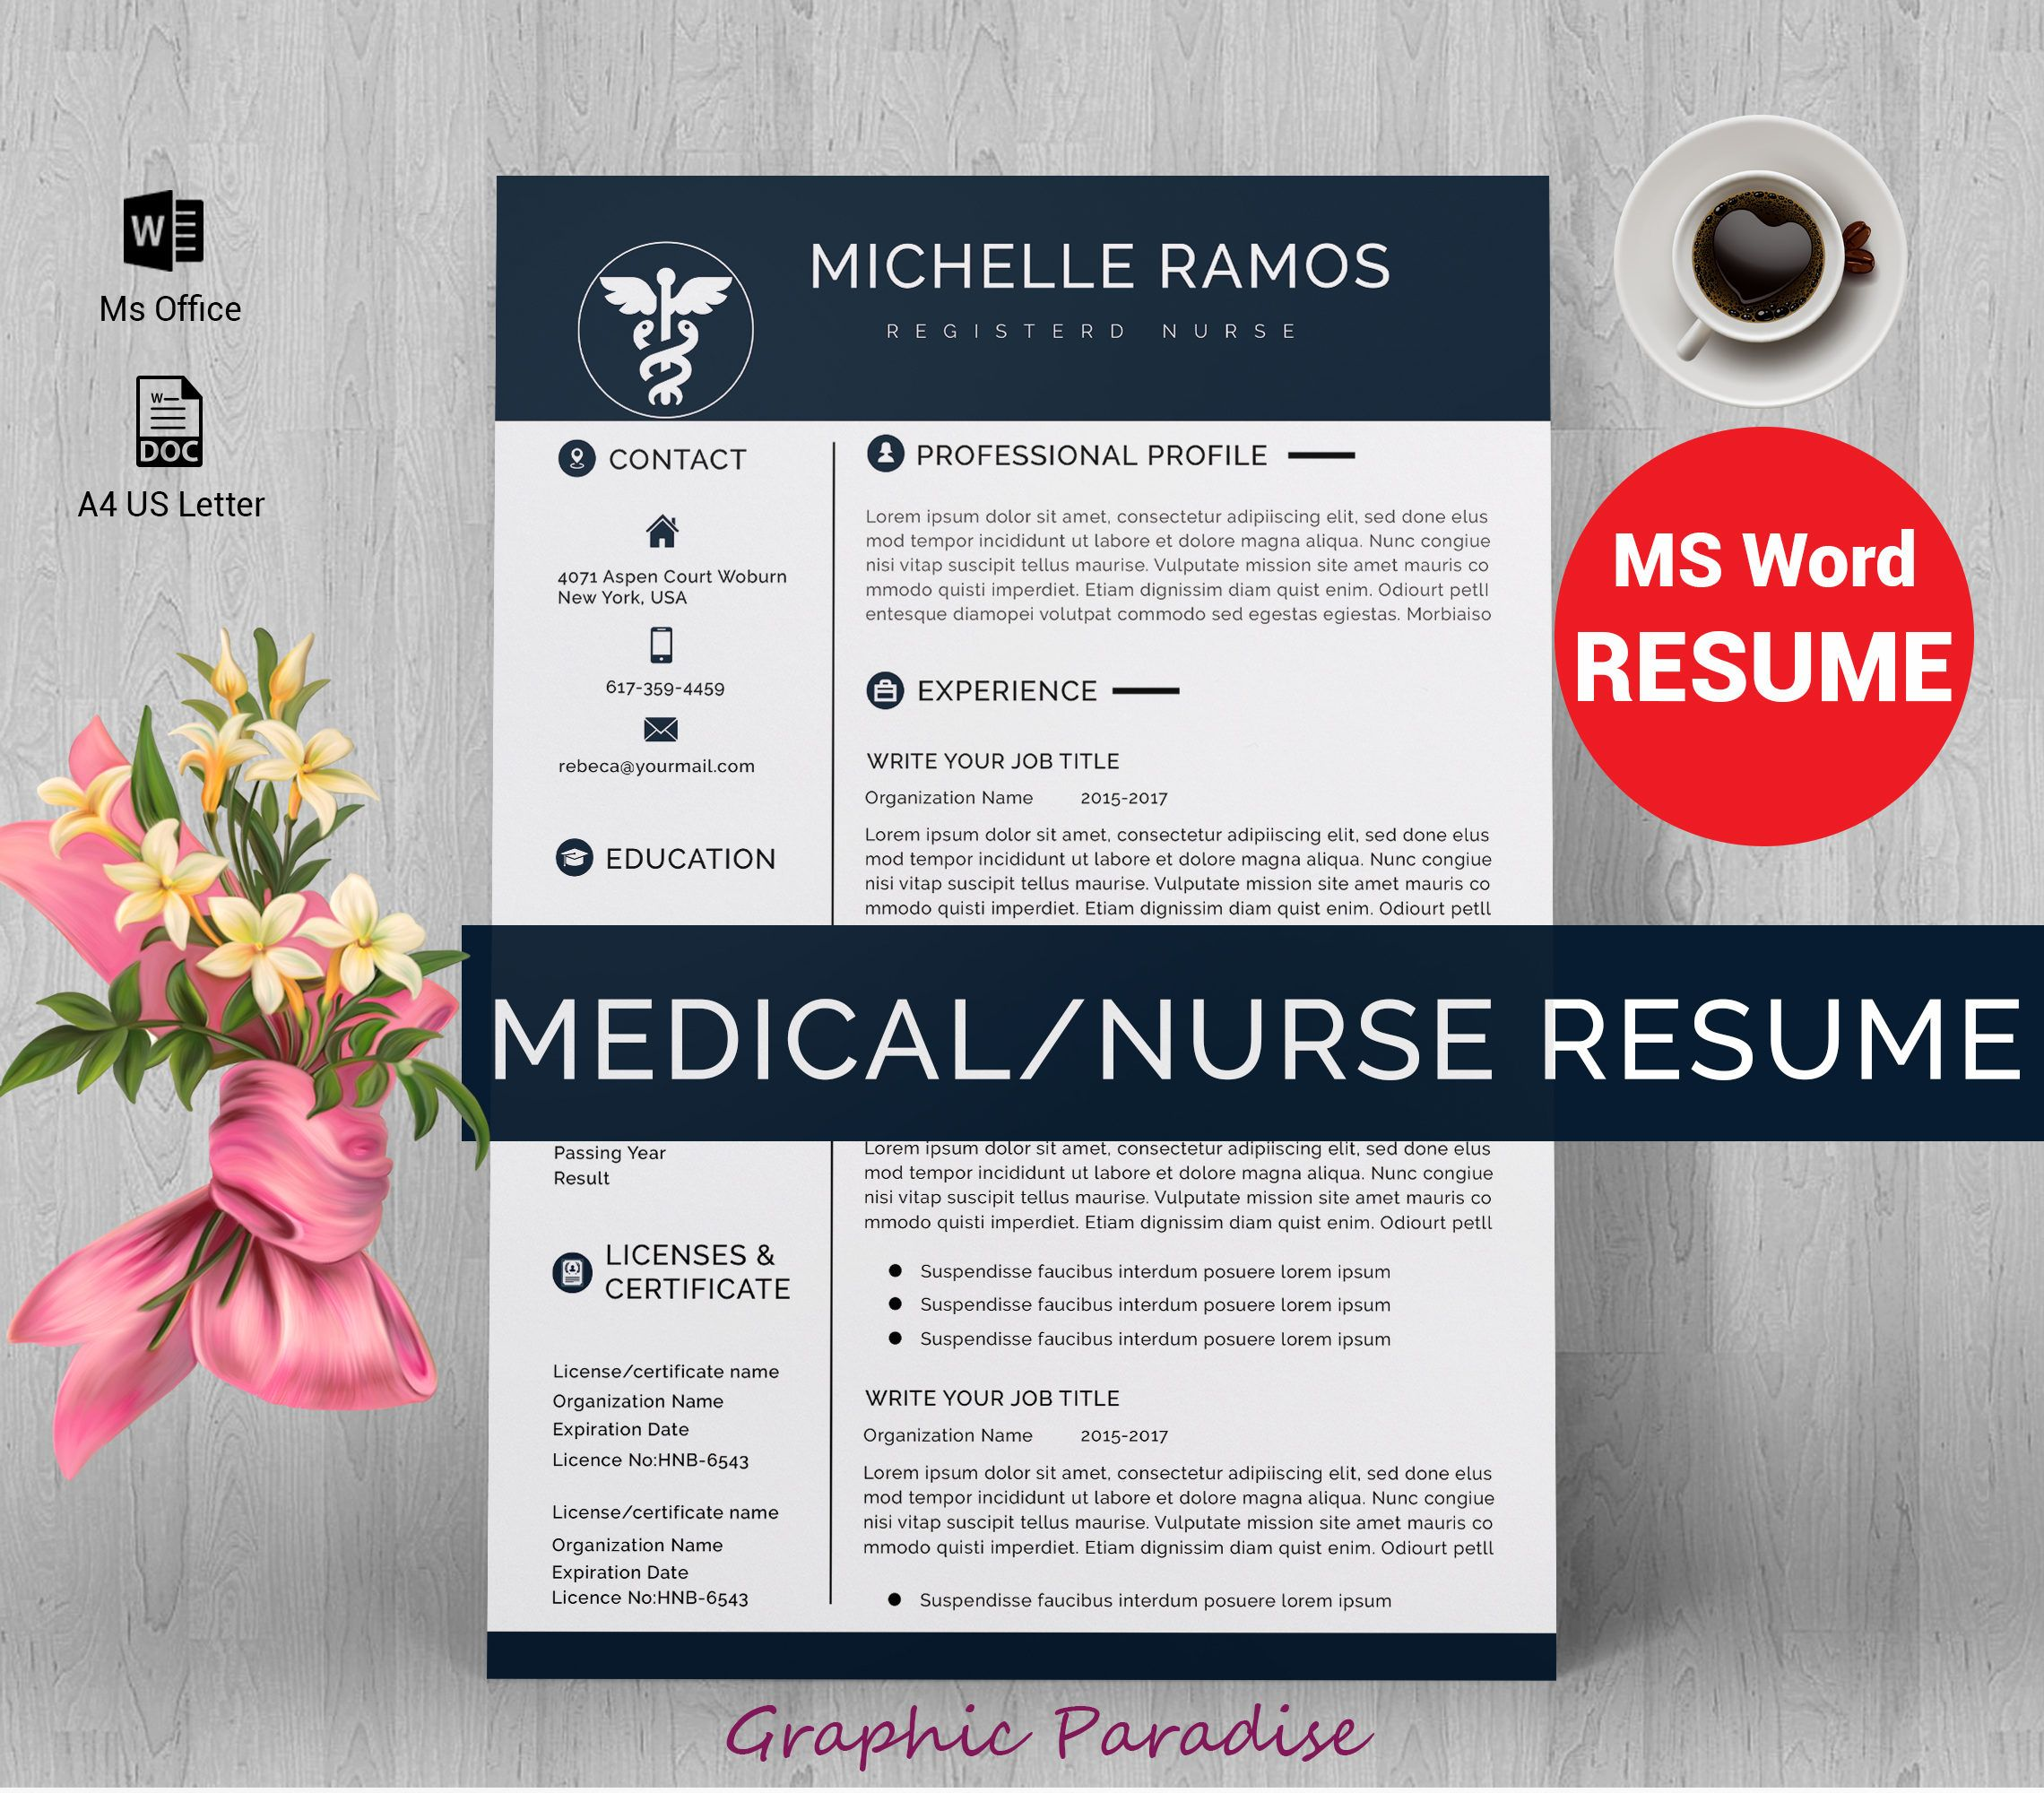 NurseMedical Ms Word Resume Template Resume Template Instant